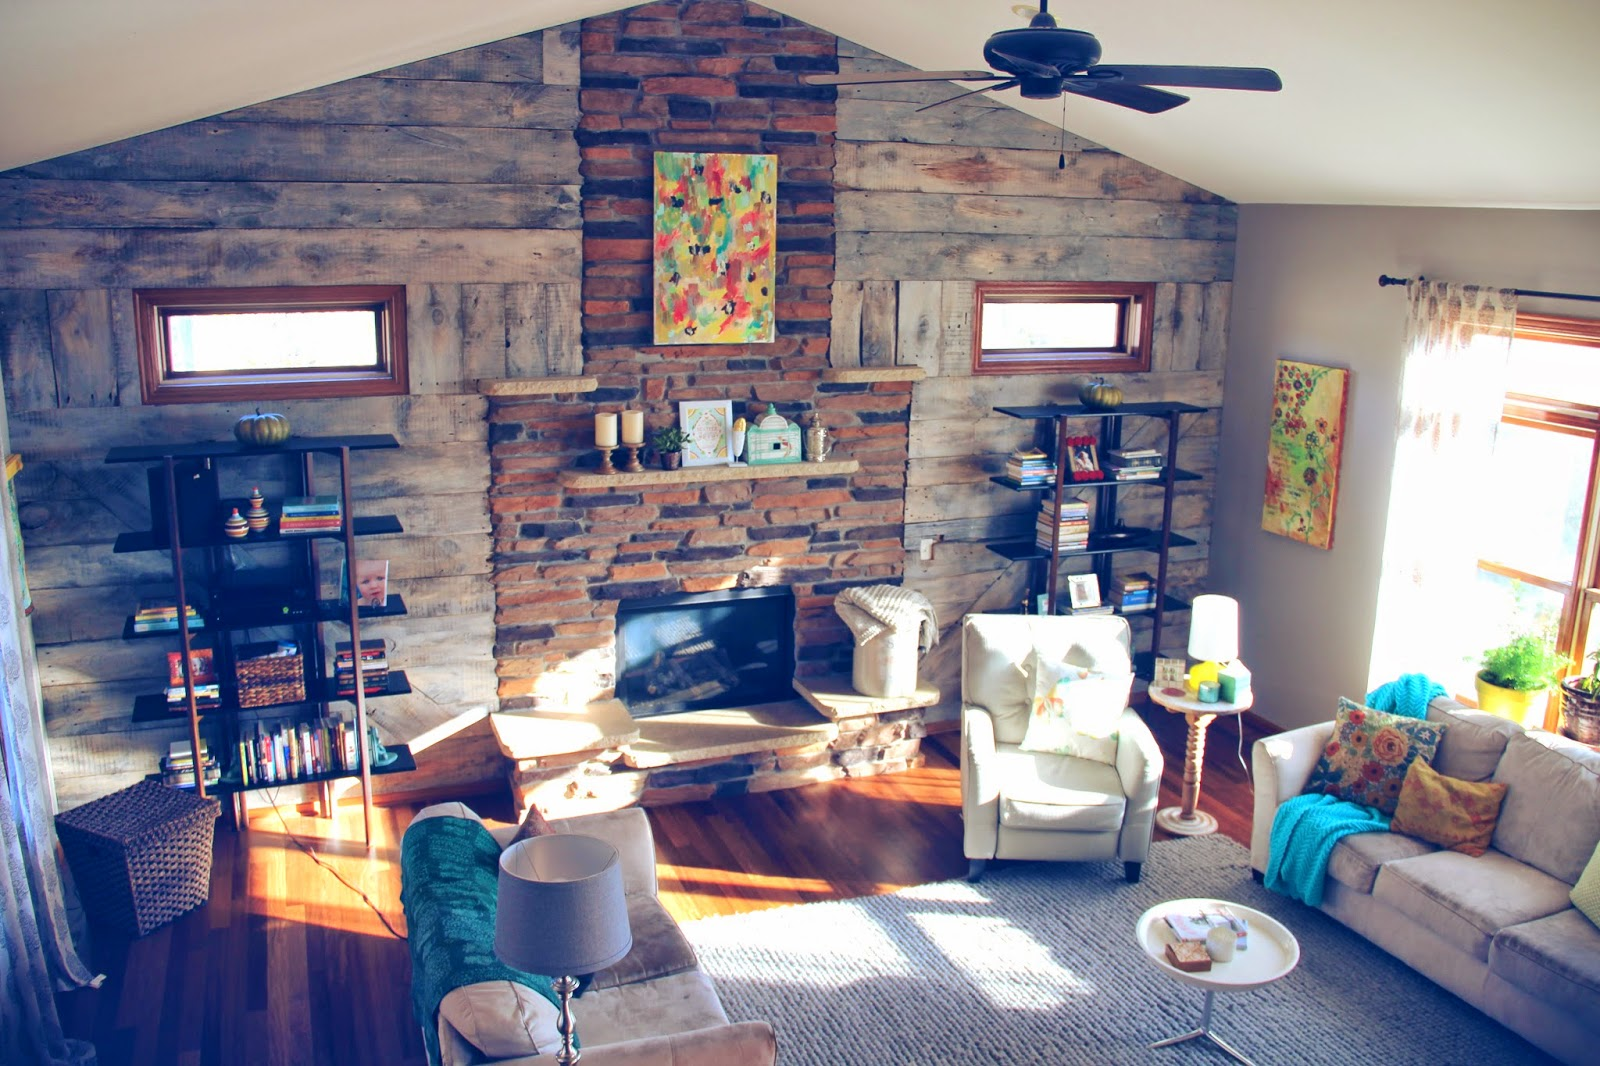 Tala Life Some Details On My Living Room Space With The